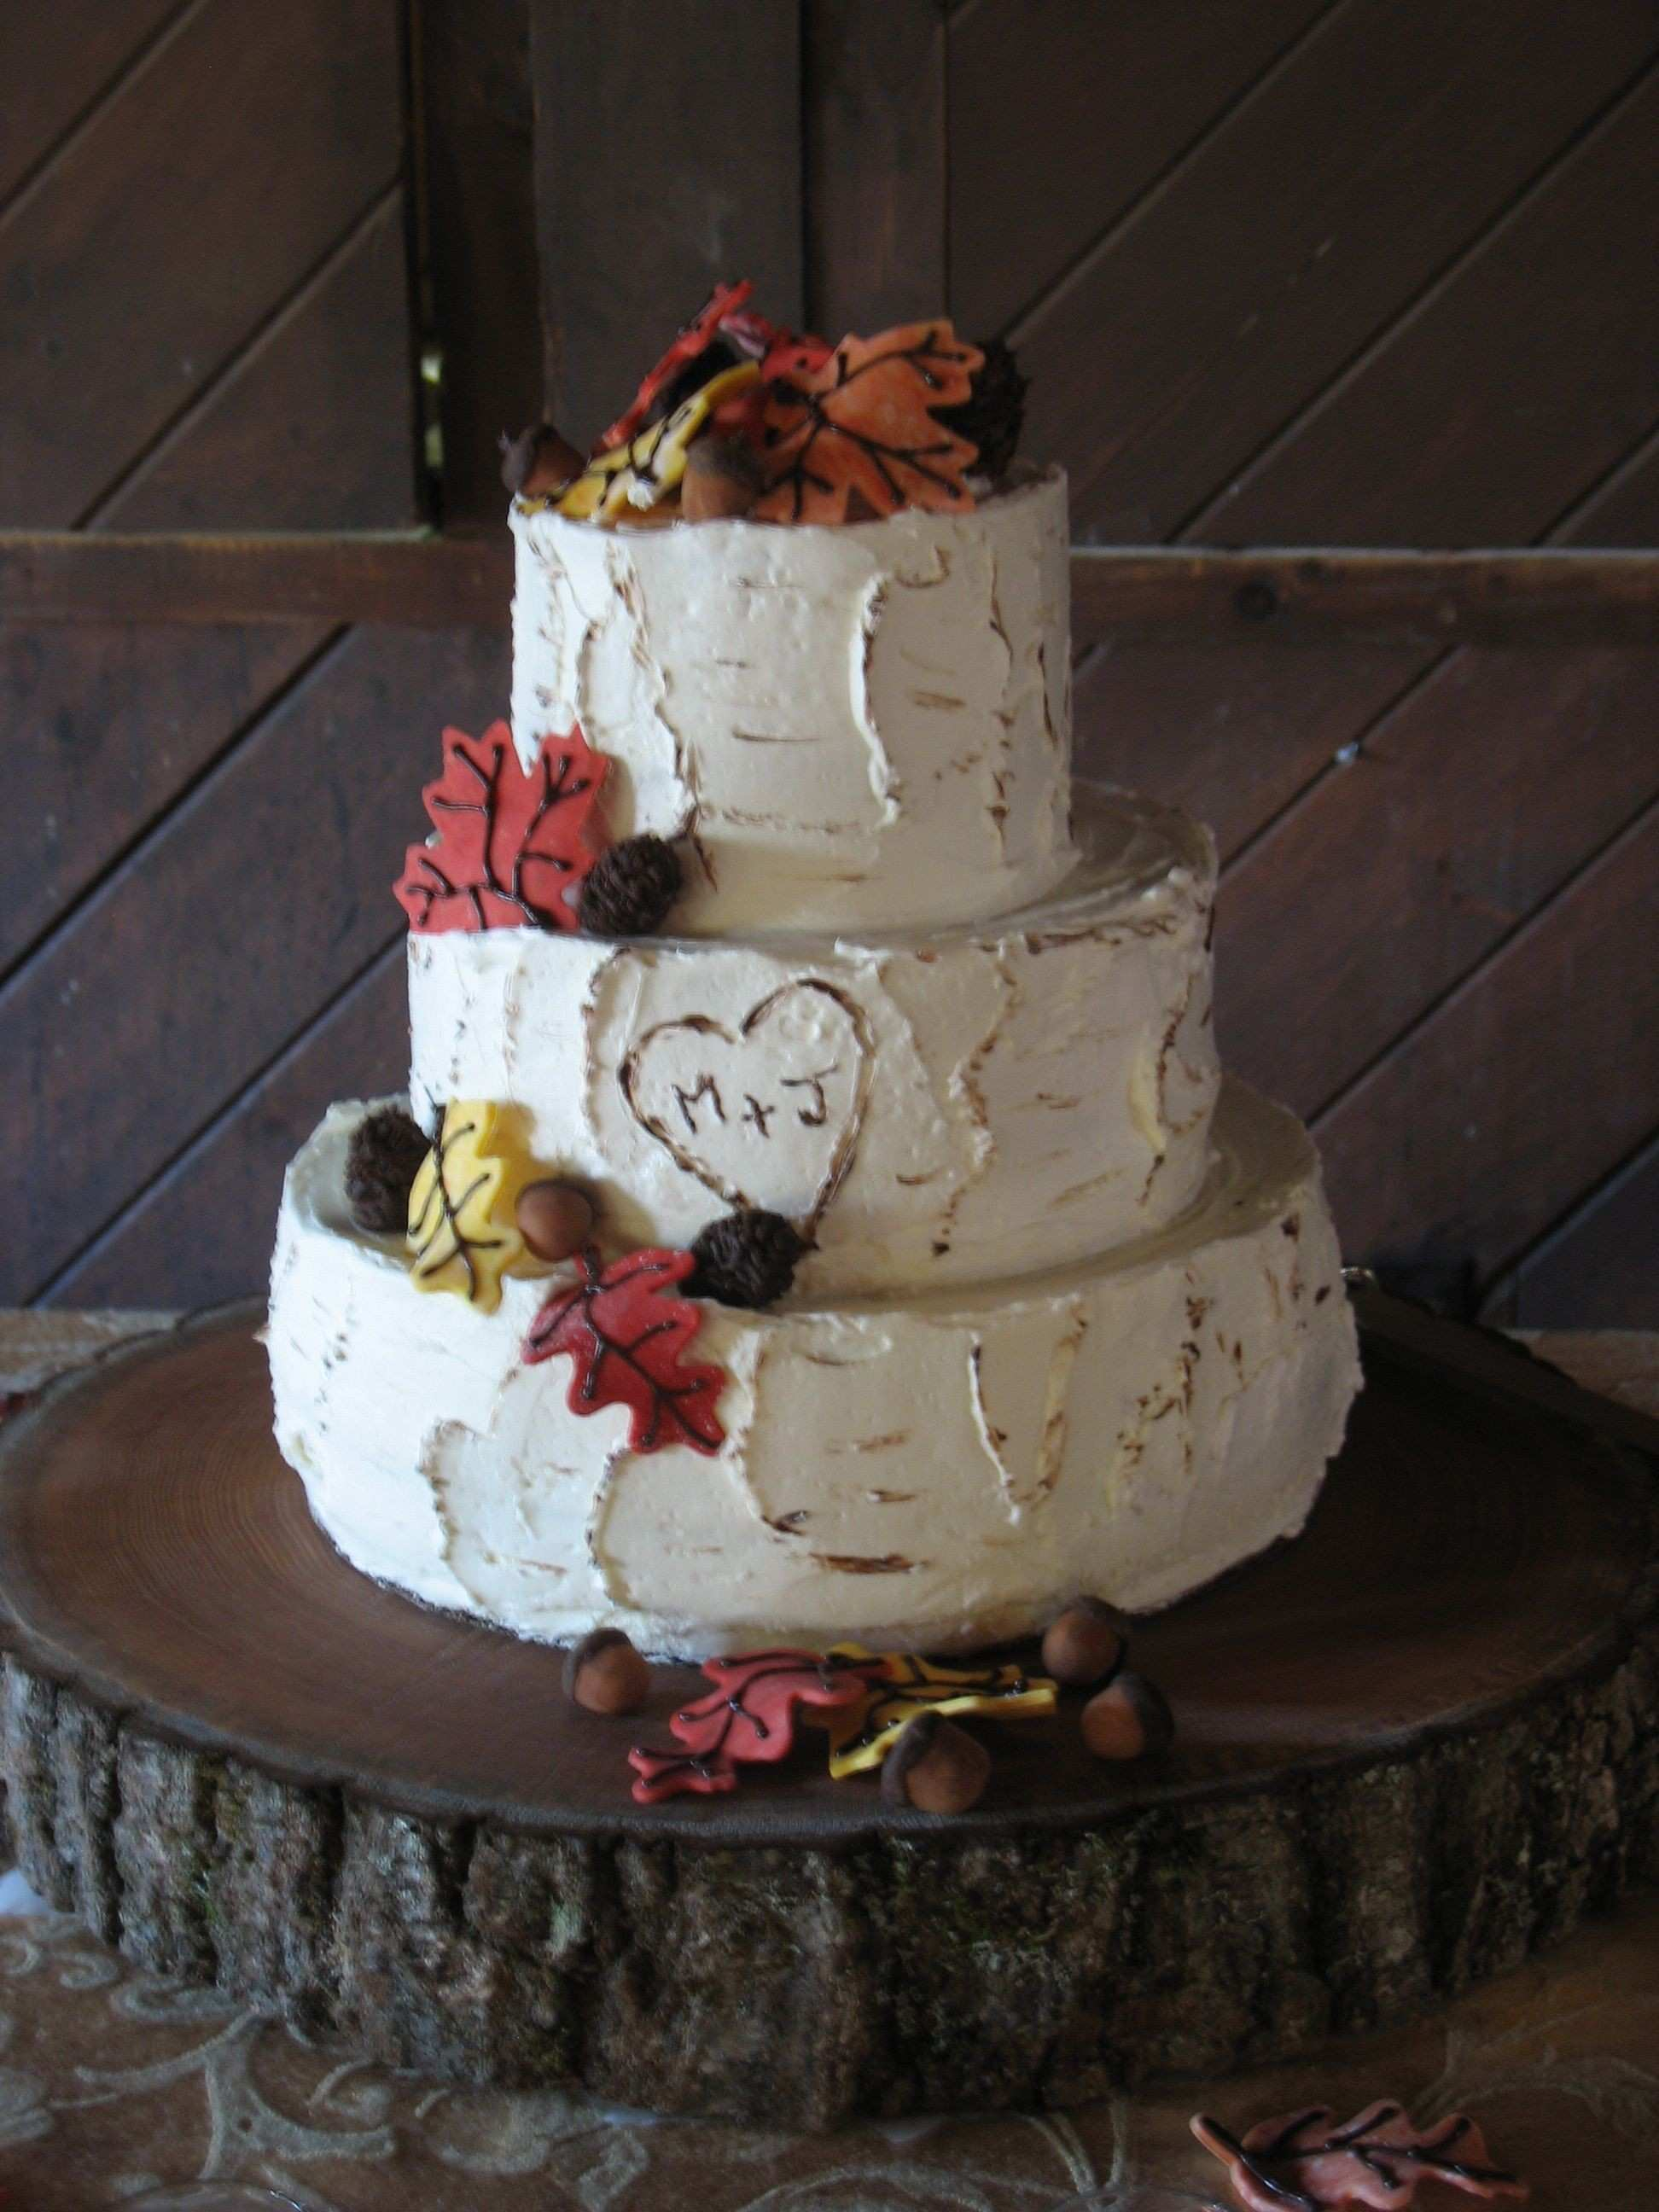 Birch inspired wedding cake with carved heart and initials fondant